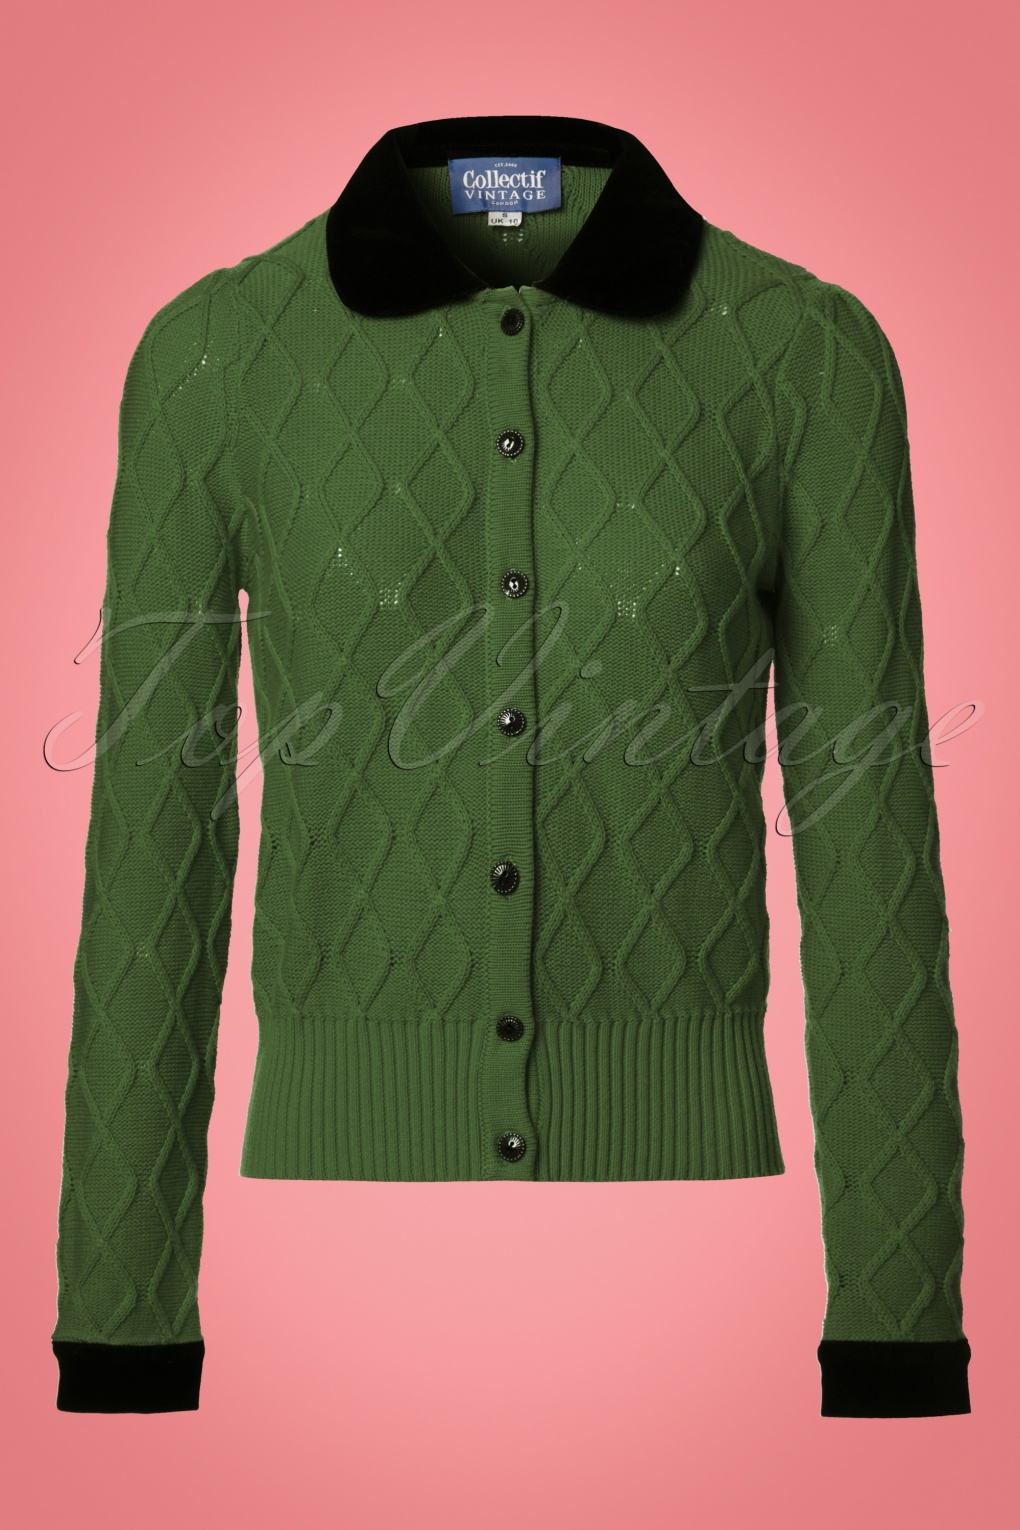 Vintage Sweaters: Cable Knit, Fair Isle Cardigans & Sweaters 40s Imogen Velvet Cardigan in Olive Green £55.07 AT vintagedancer.com